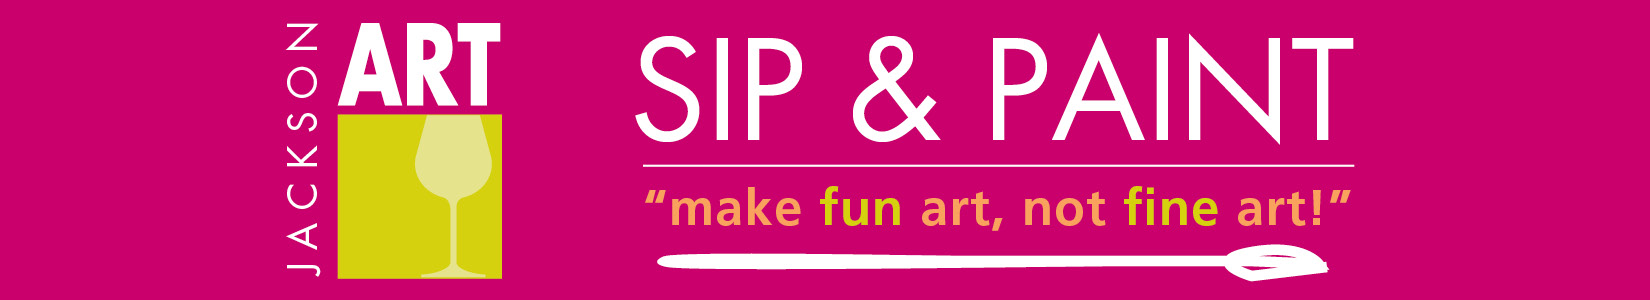 Sip and Paint banner